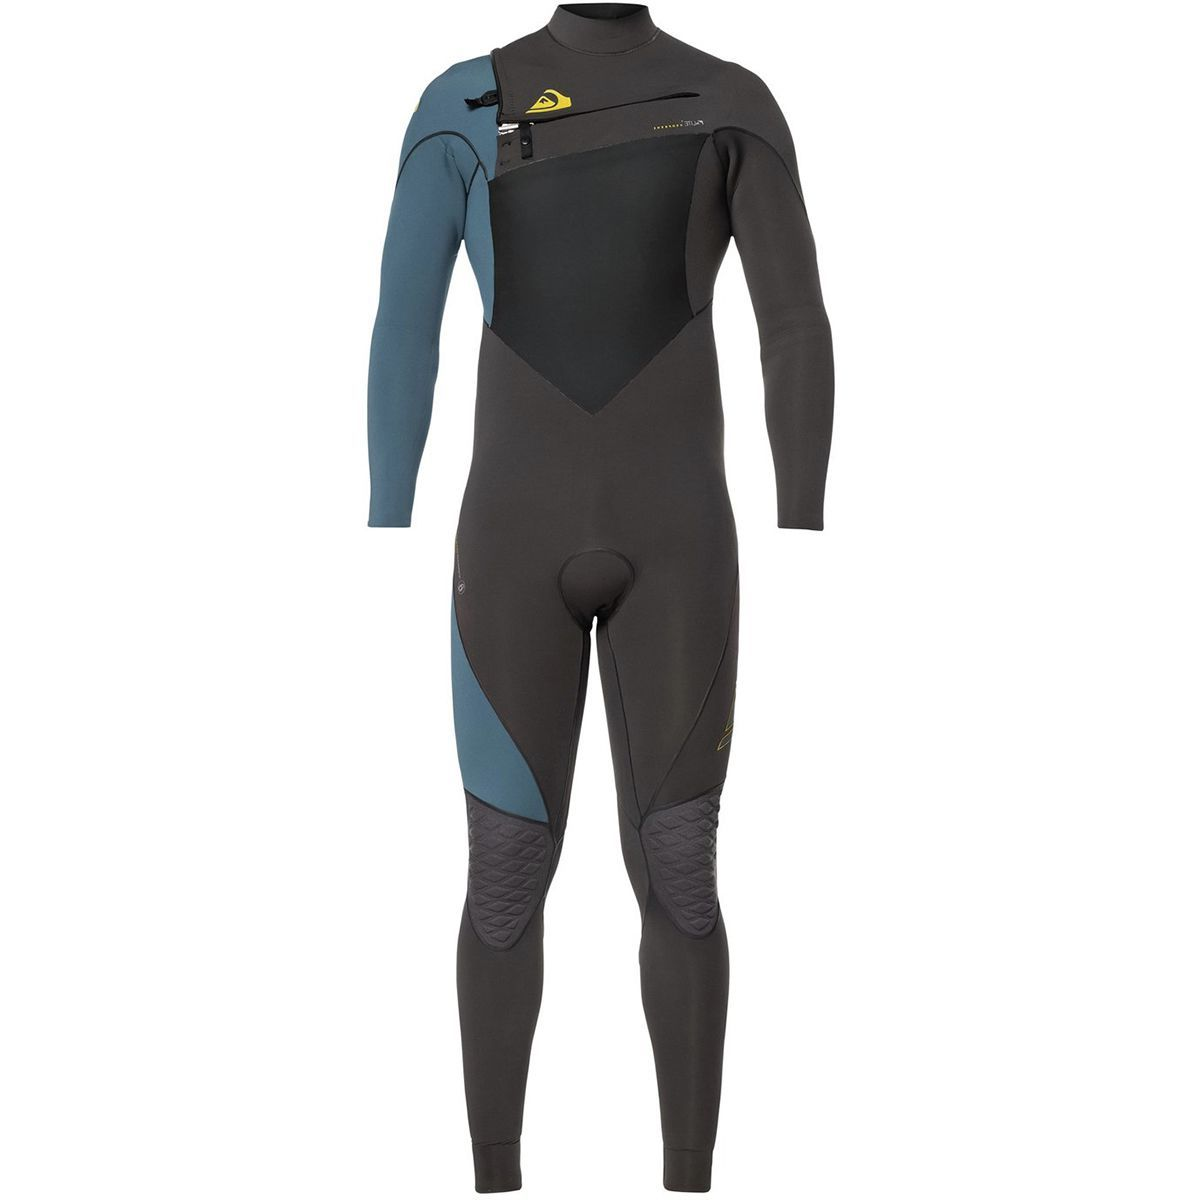 Quiksilver 4/3 Highline Plus Chest-Zip Hydrolock Wetsuit - Men's